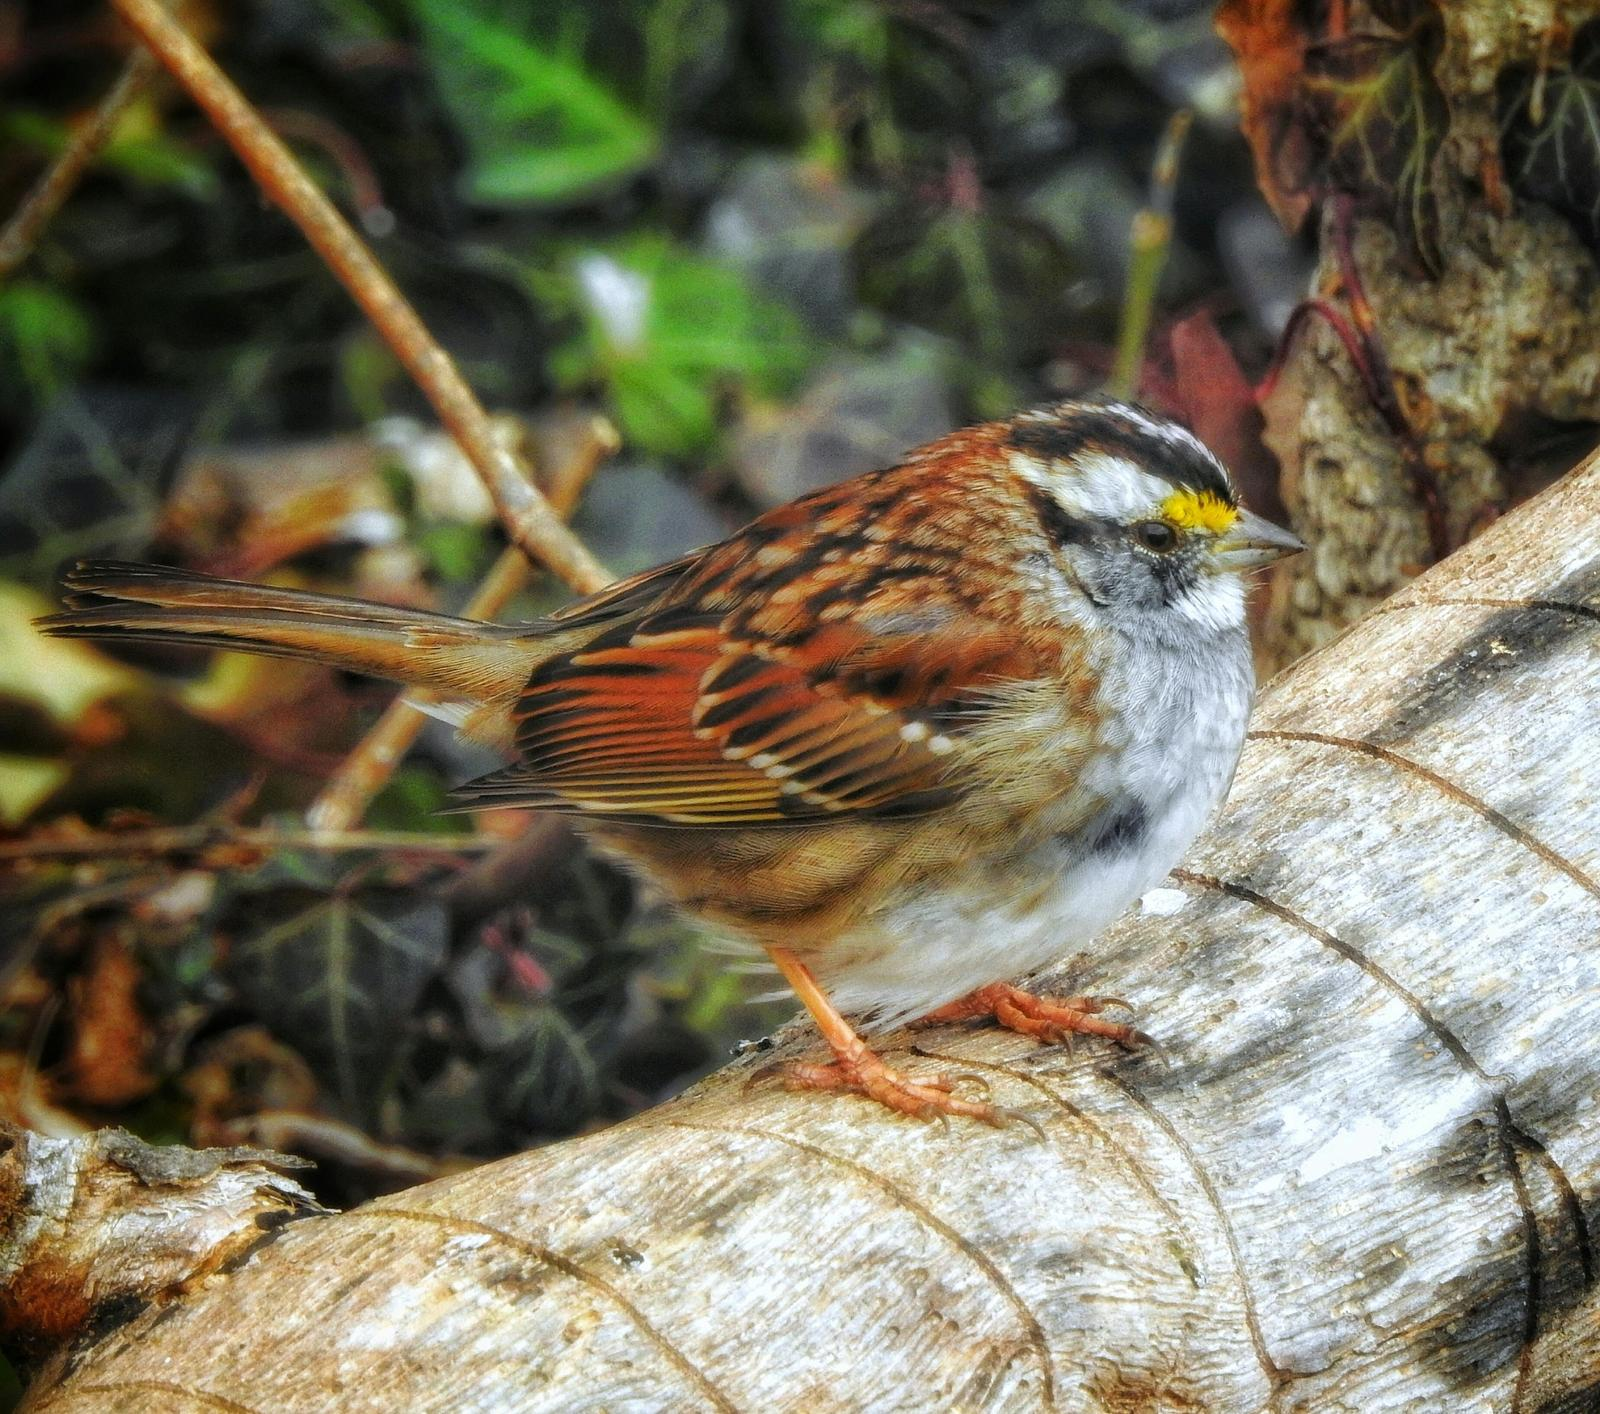 White-throated Sparrow Photo by Steven Kleiman